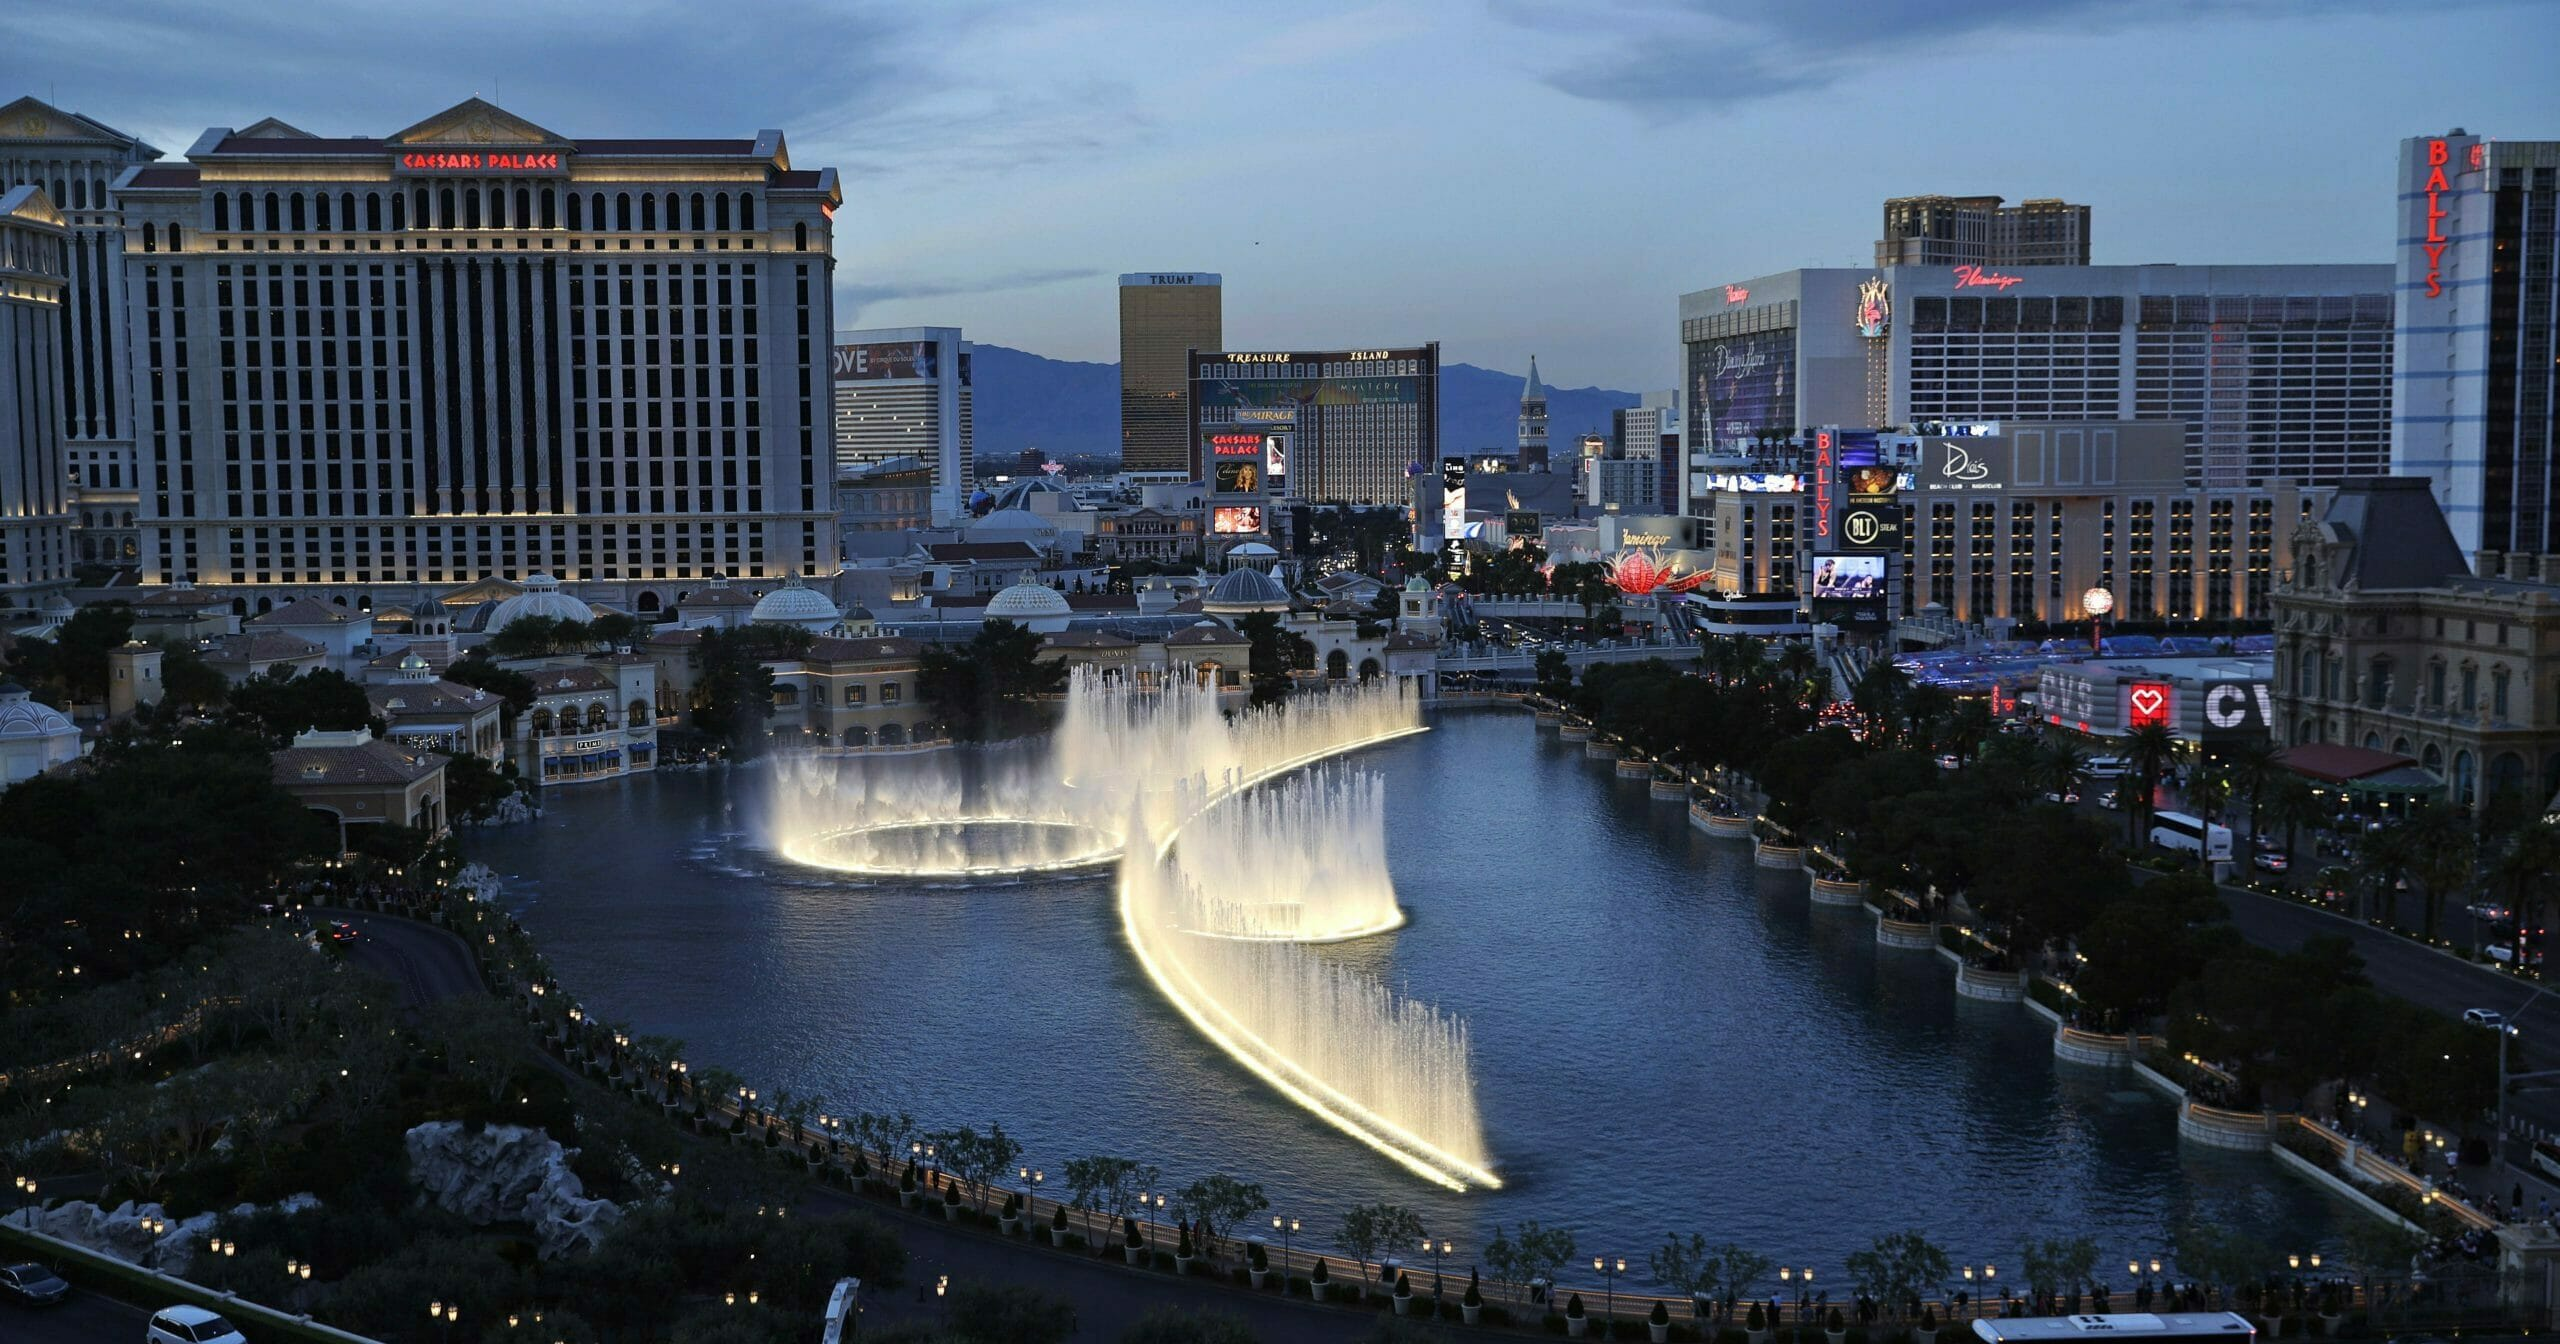 The fountains of the Bellagio, shown erupting along the Las Vegas Strip in 2017, will be a central feature in the NFL's draft April 23-25.